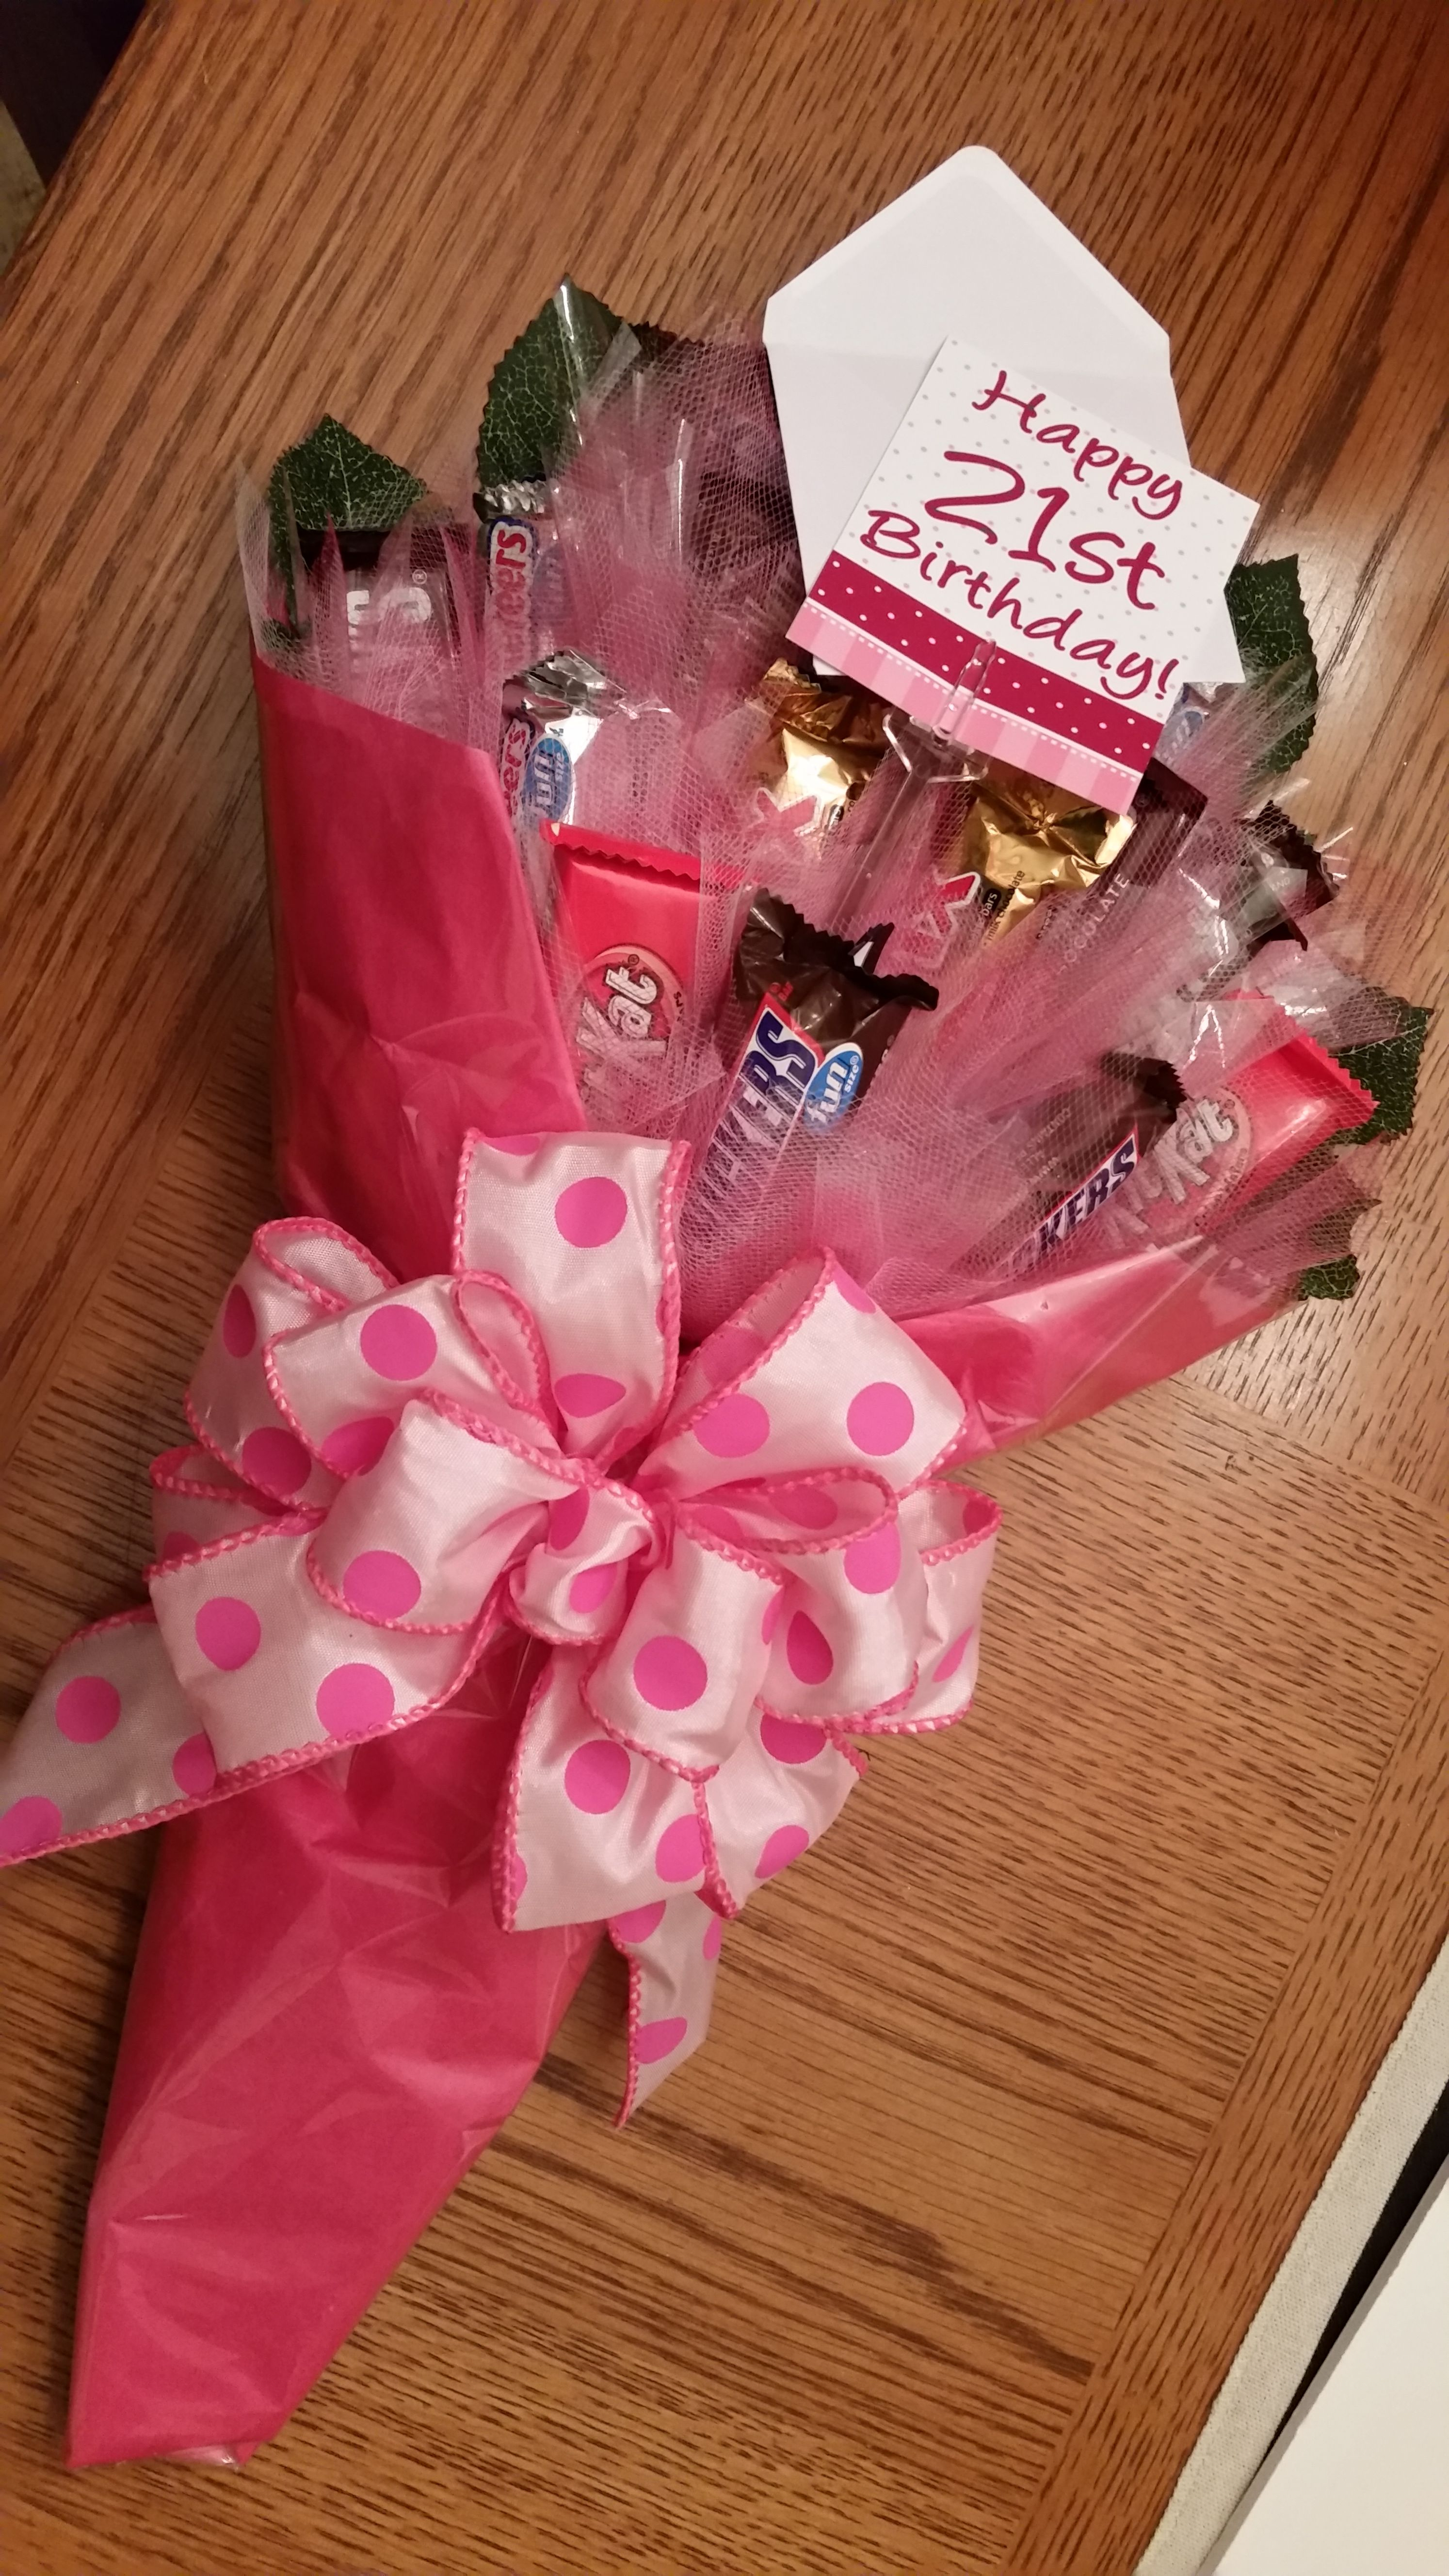 Candy bouquet | Gifts | Pinterest | Candy bouquet, Gift ...